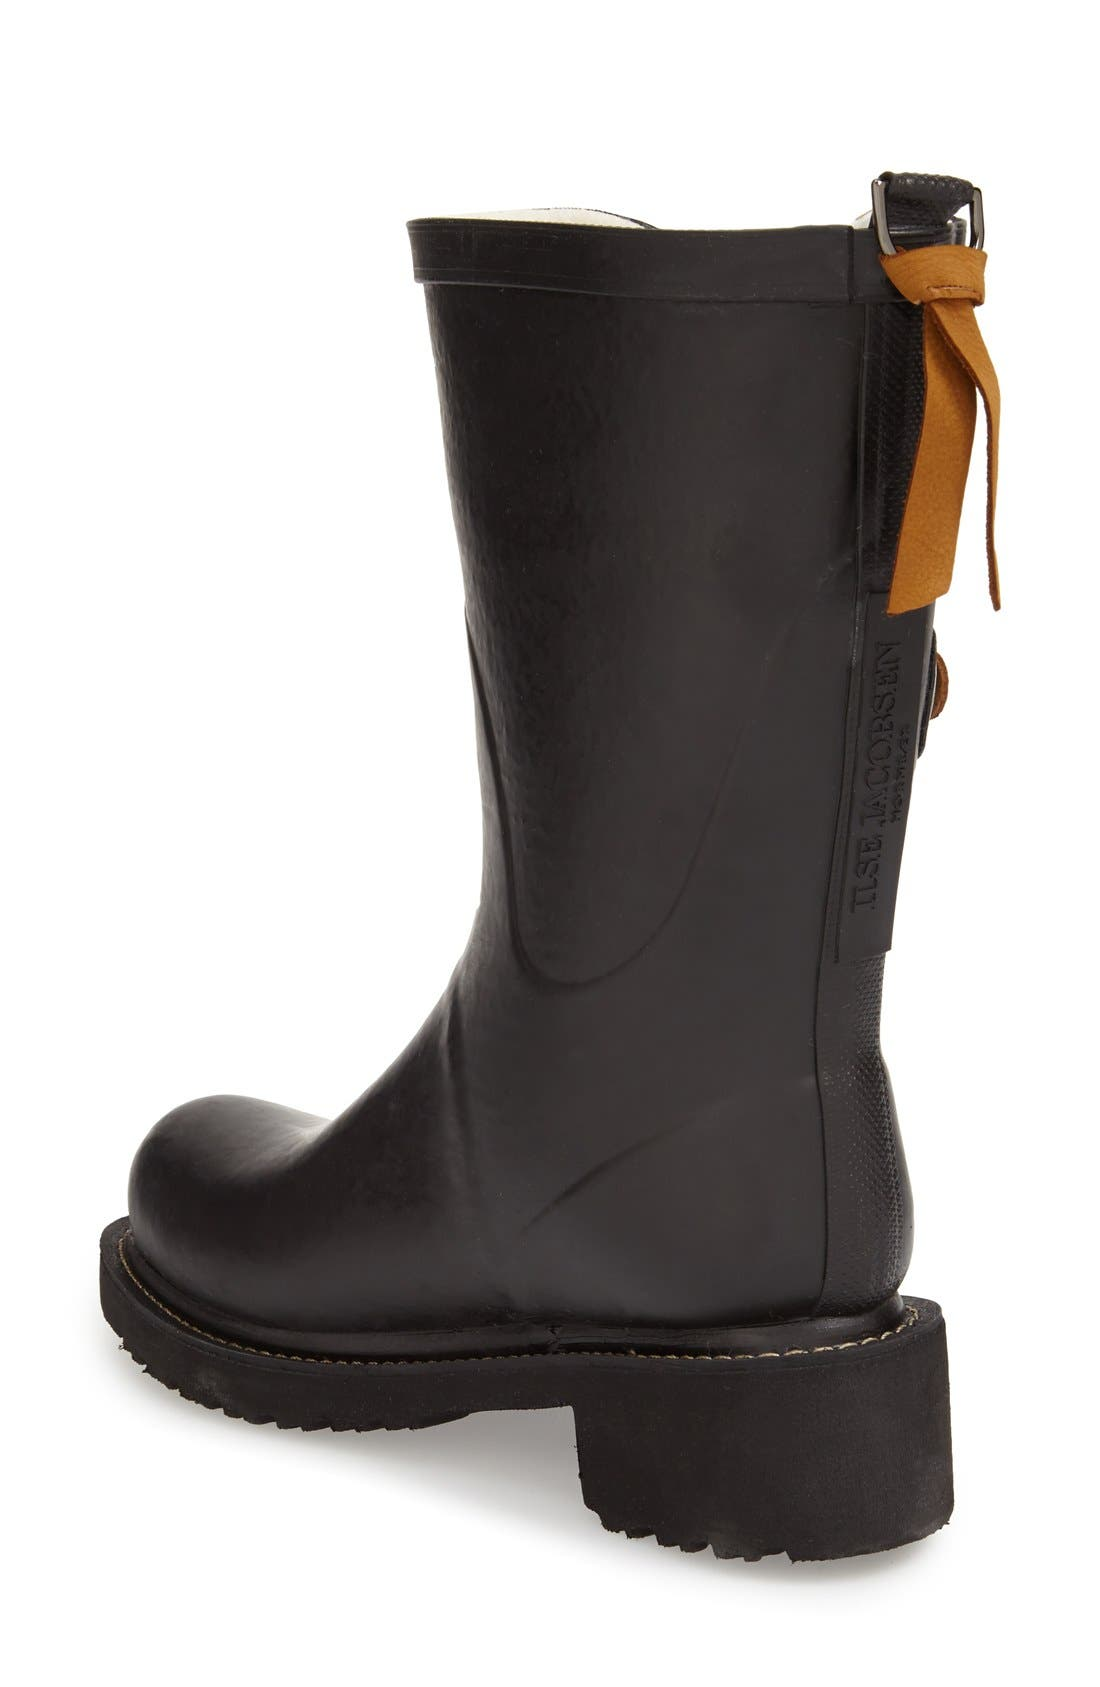 Alternate Image 2  - Ilse Jacobsen Waterproof Buckle Detail Snow/Rain Boot (Women)